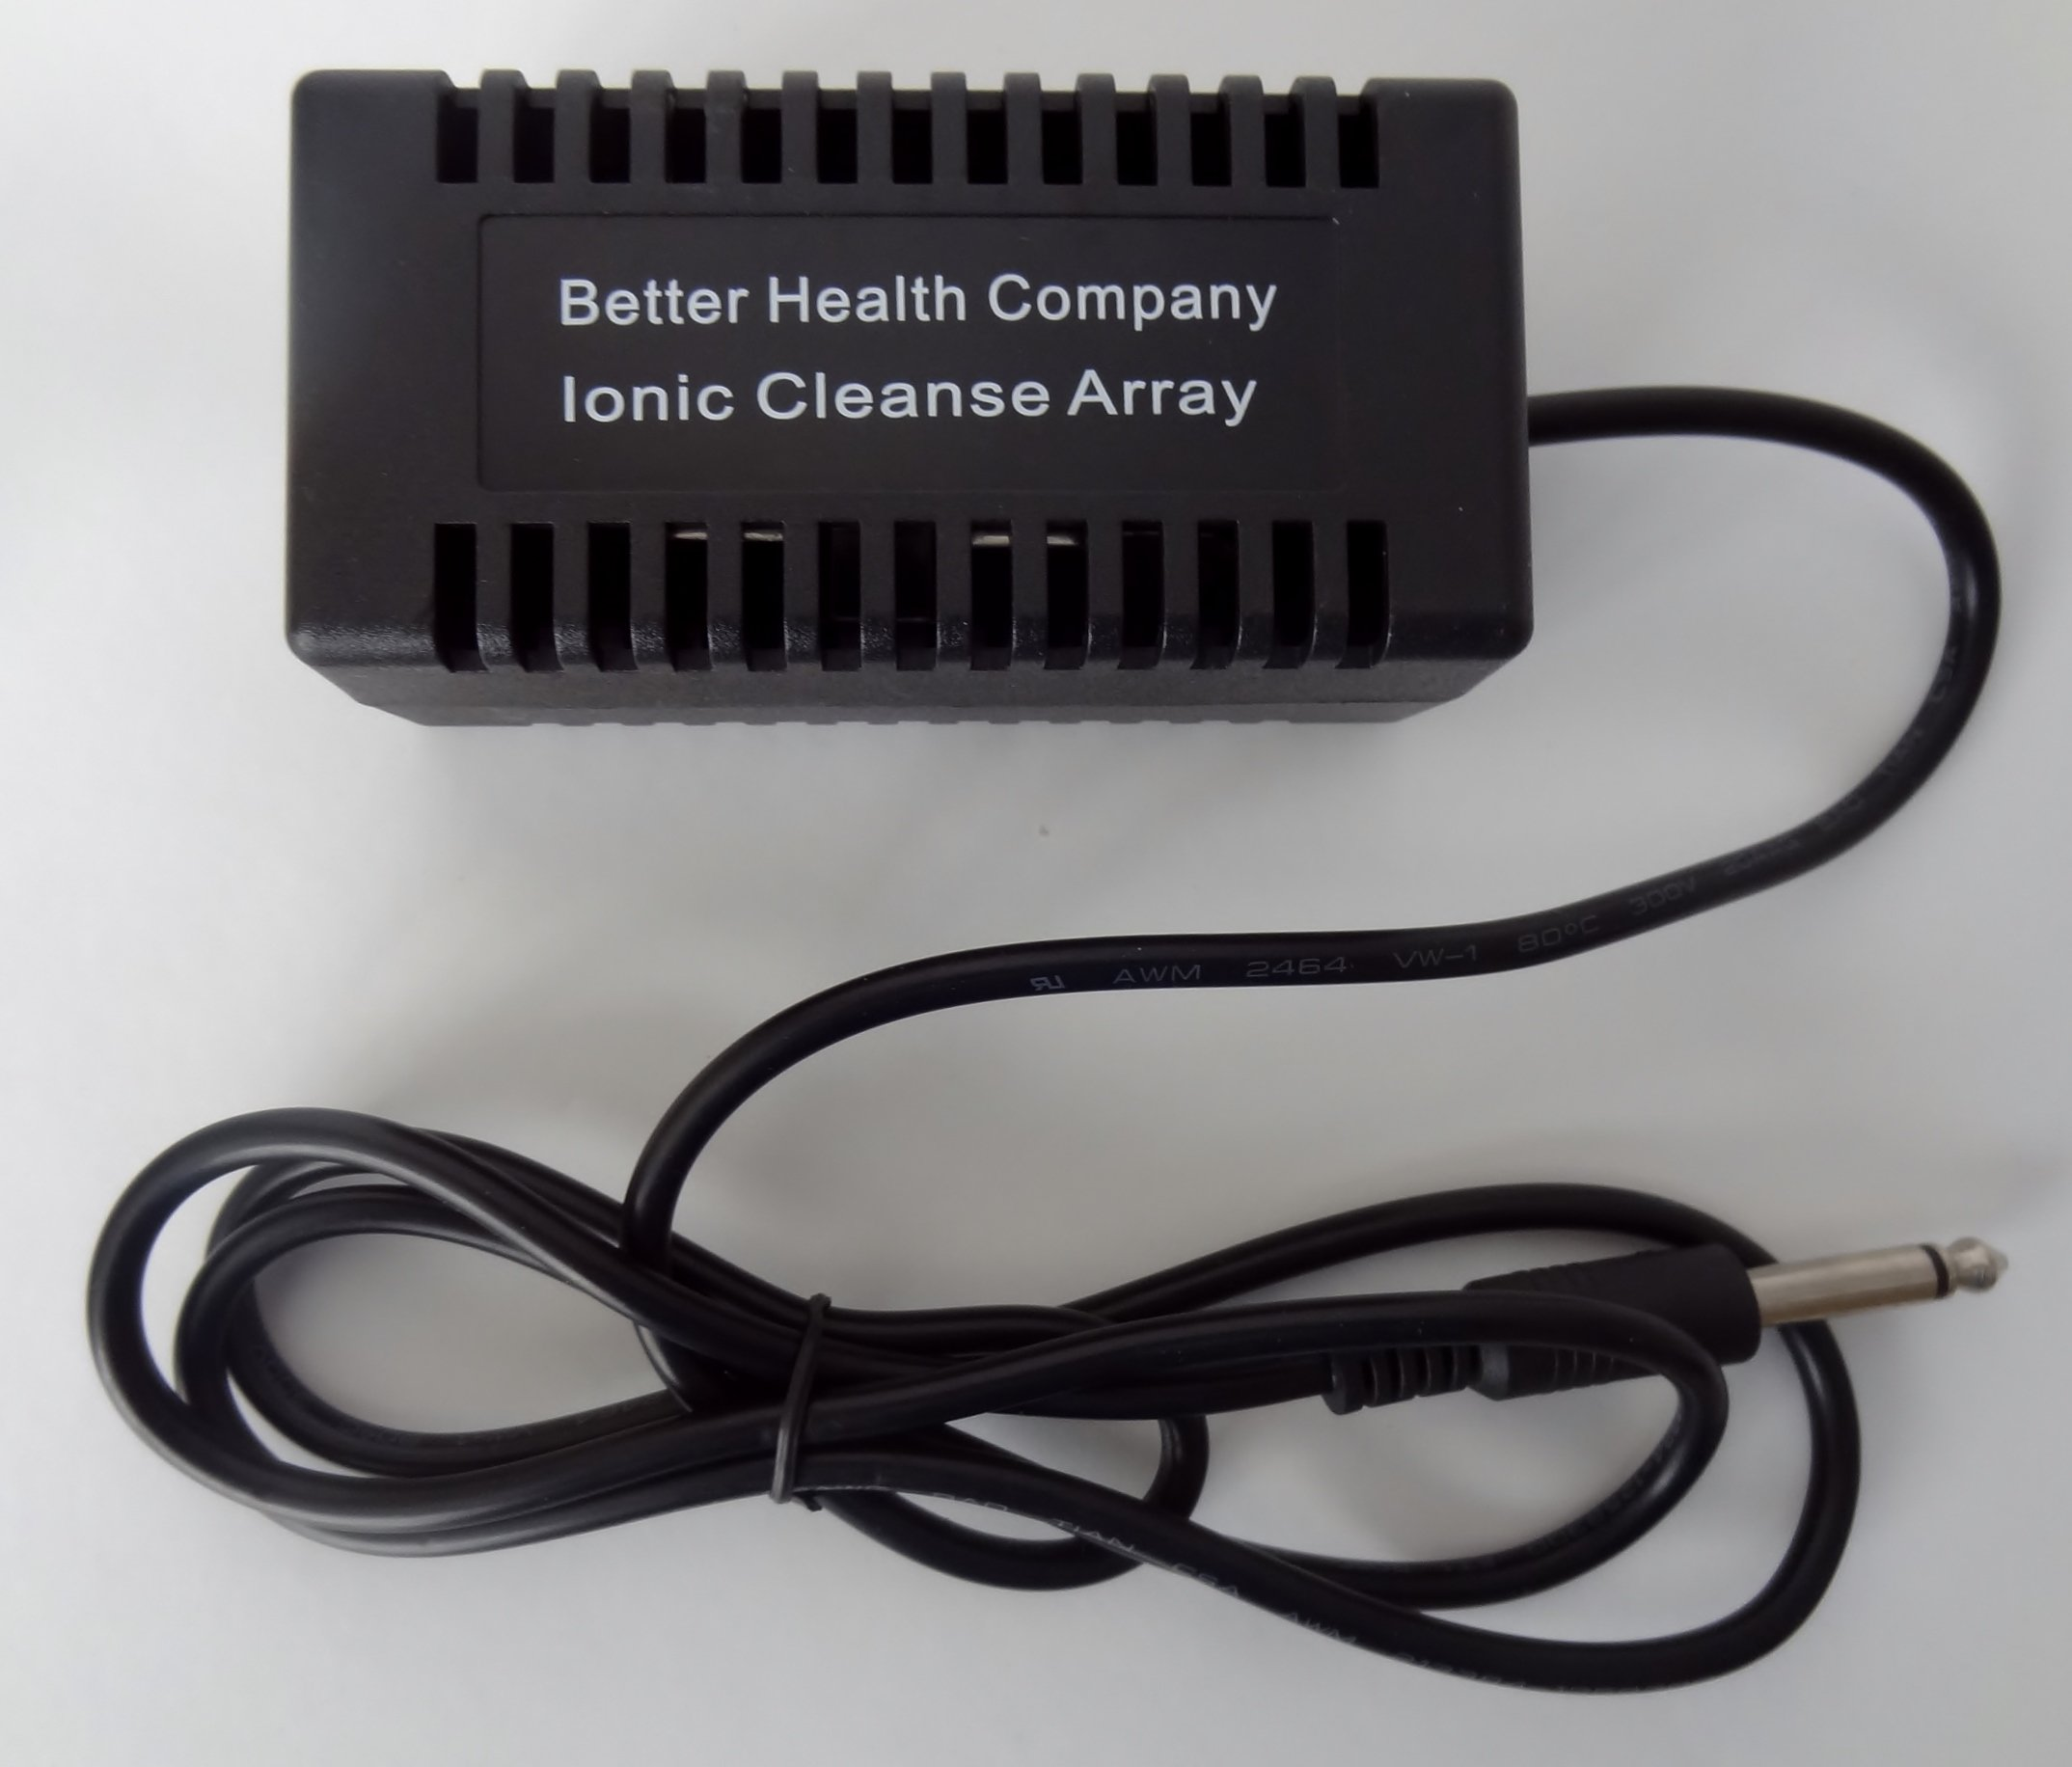 Rectangular Black Ionic Cleanse Detox Foot Spa Arrays by Better Health Company by Better Health Company (Image #4)